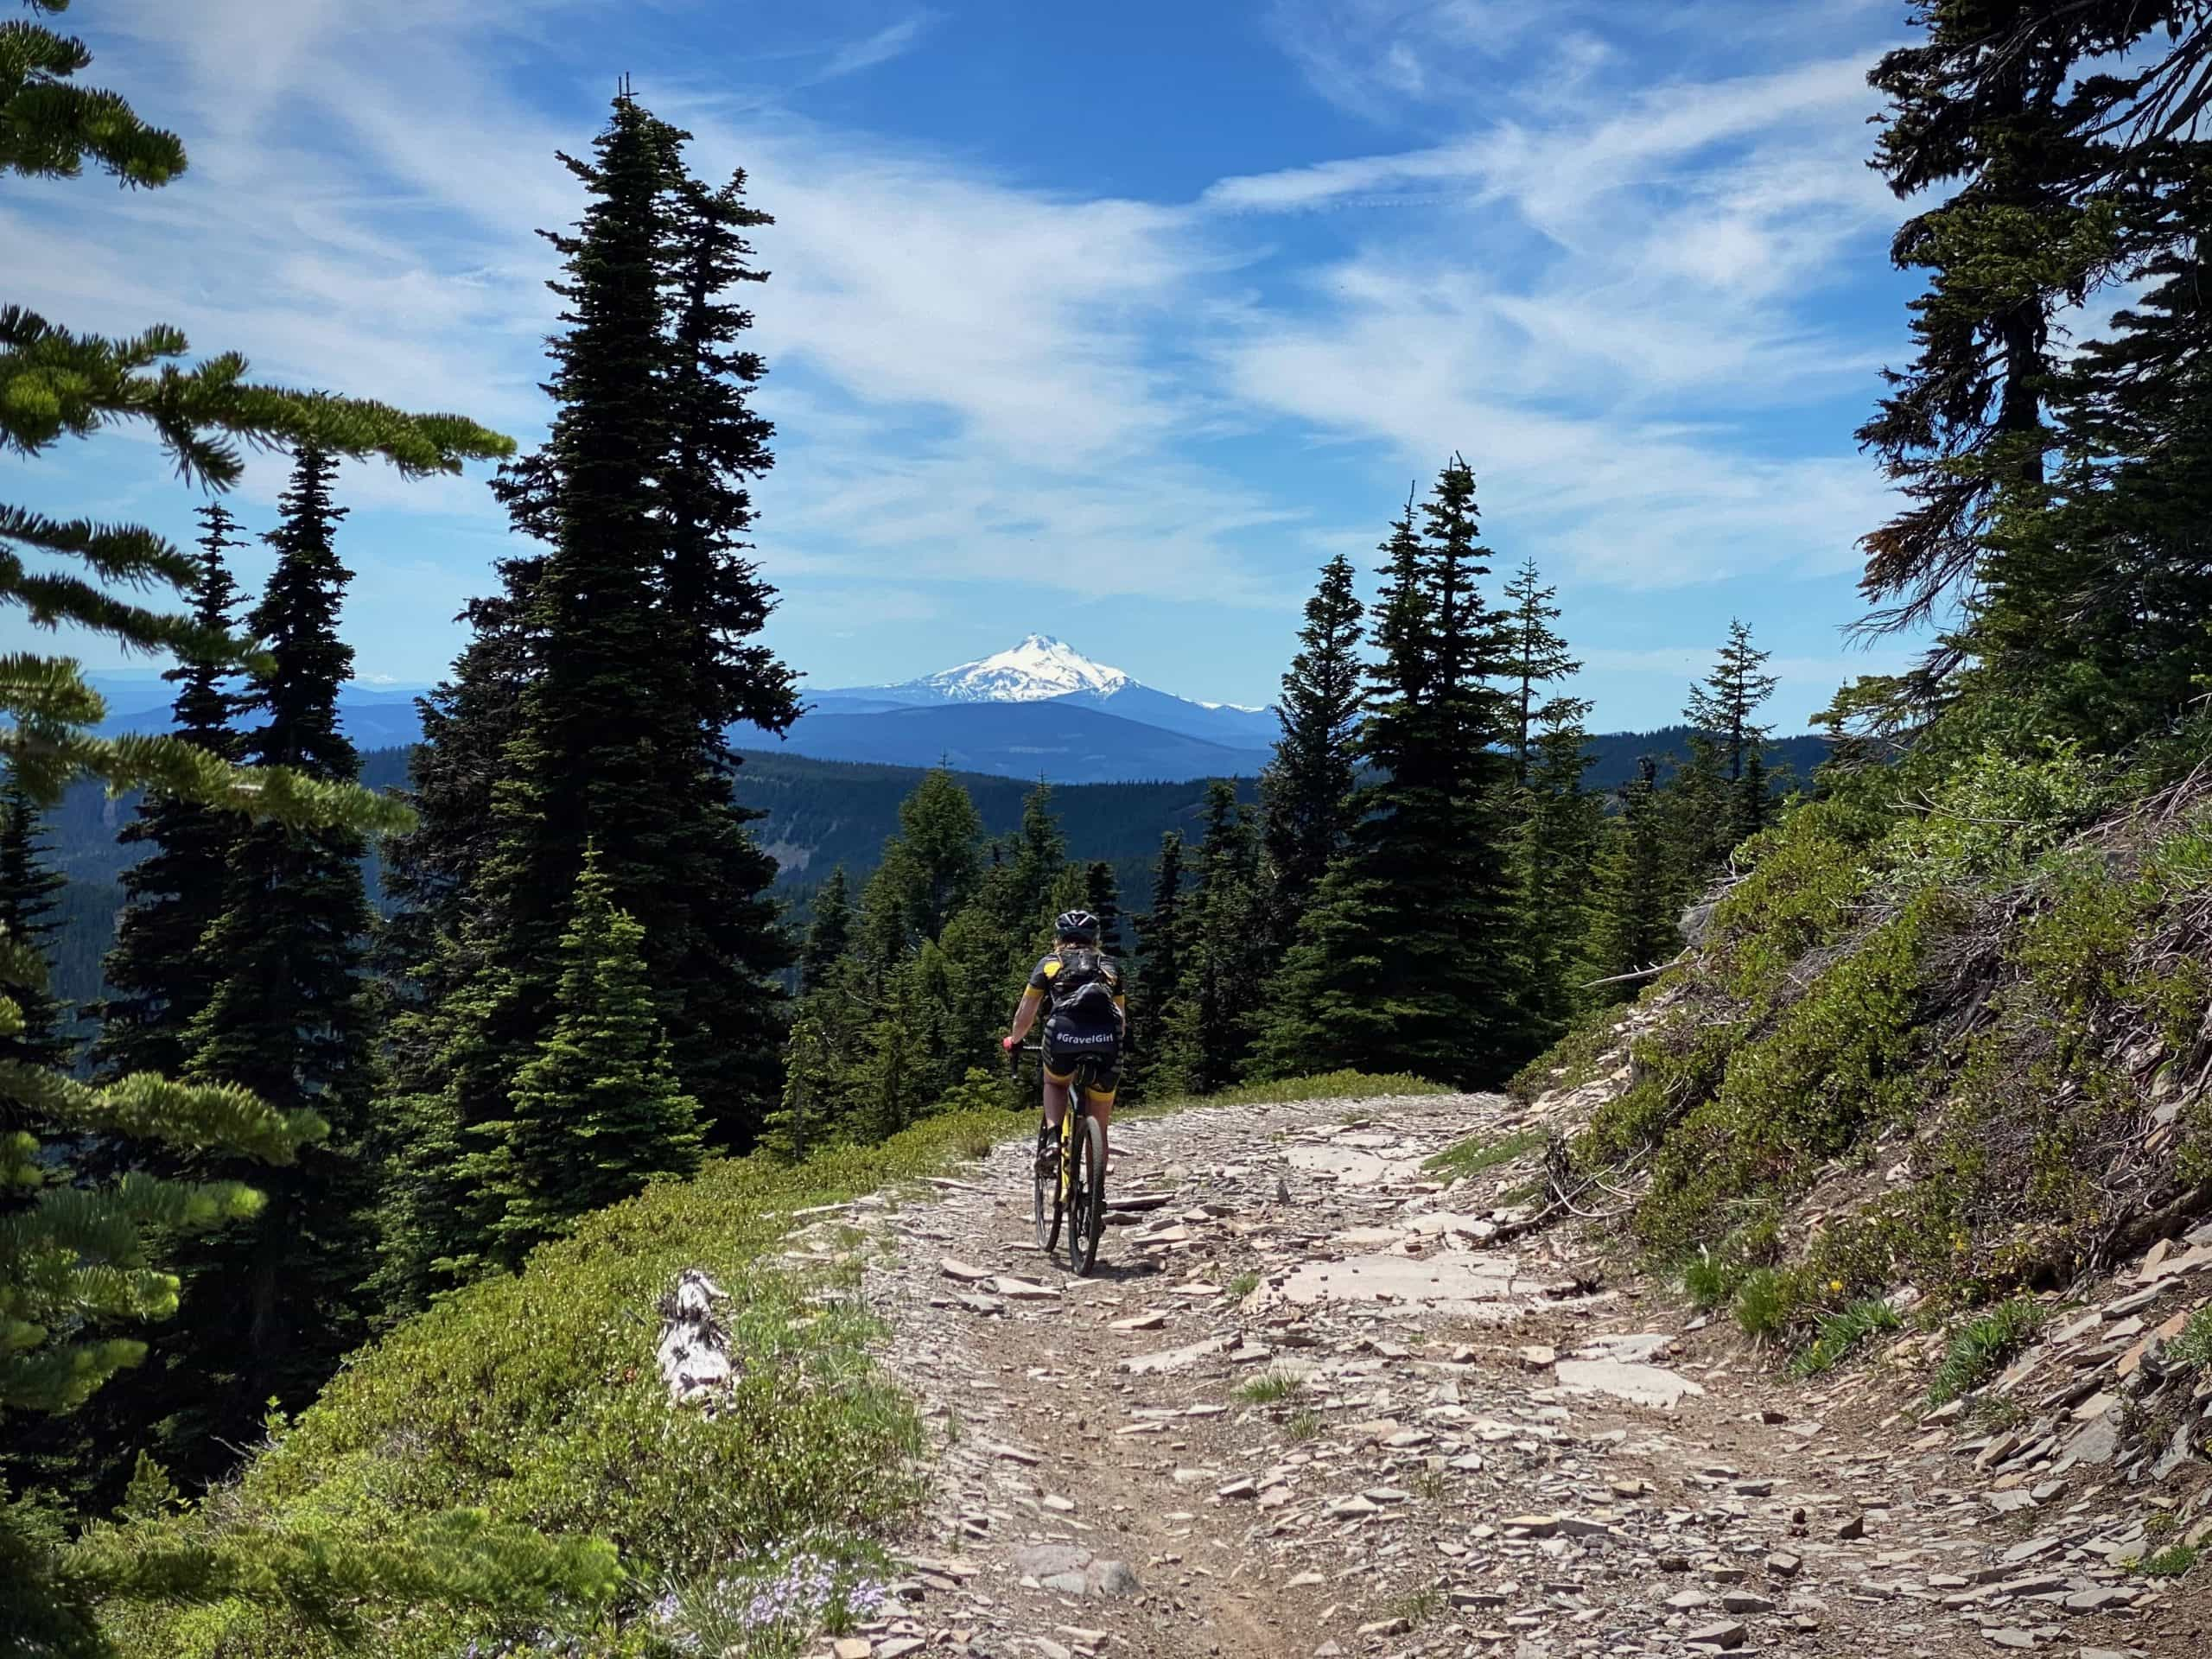 Gravel Girl riding Bennett Pass road with Mt Jefferson in the background.